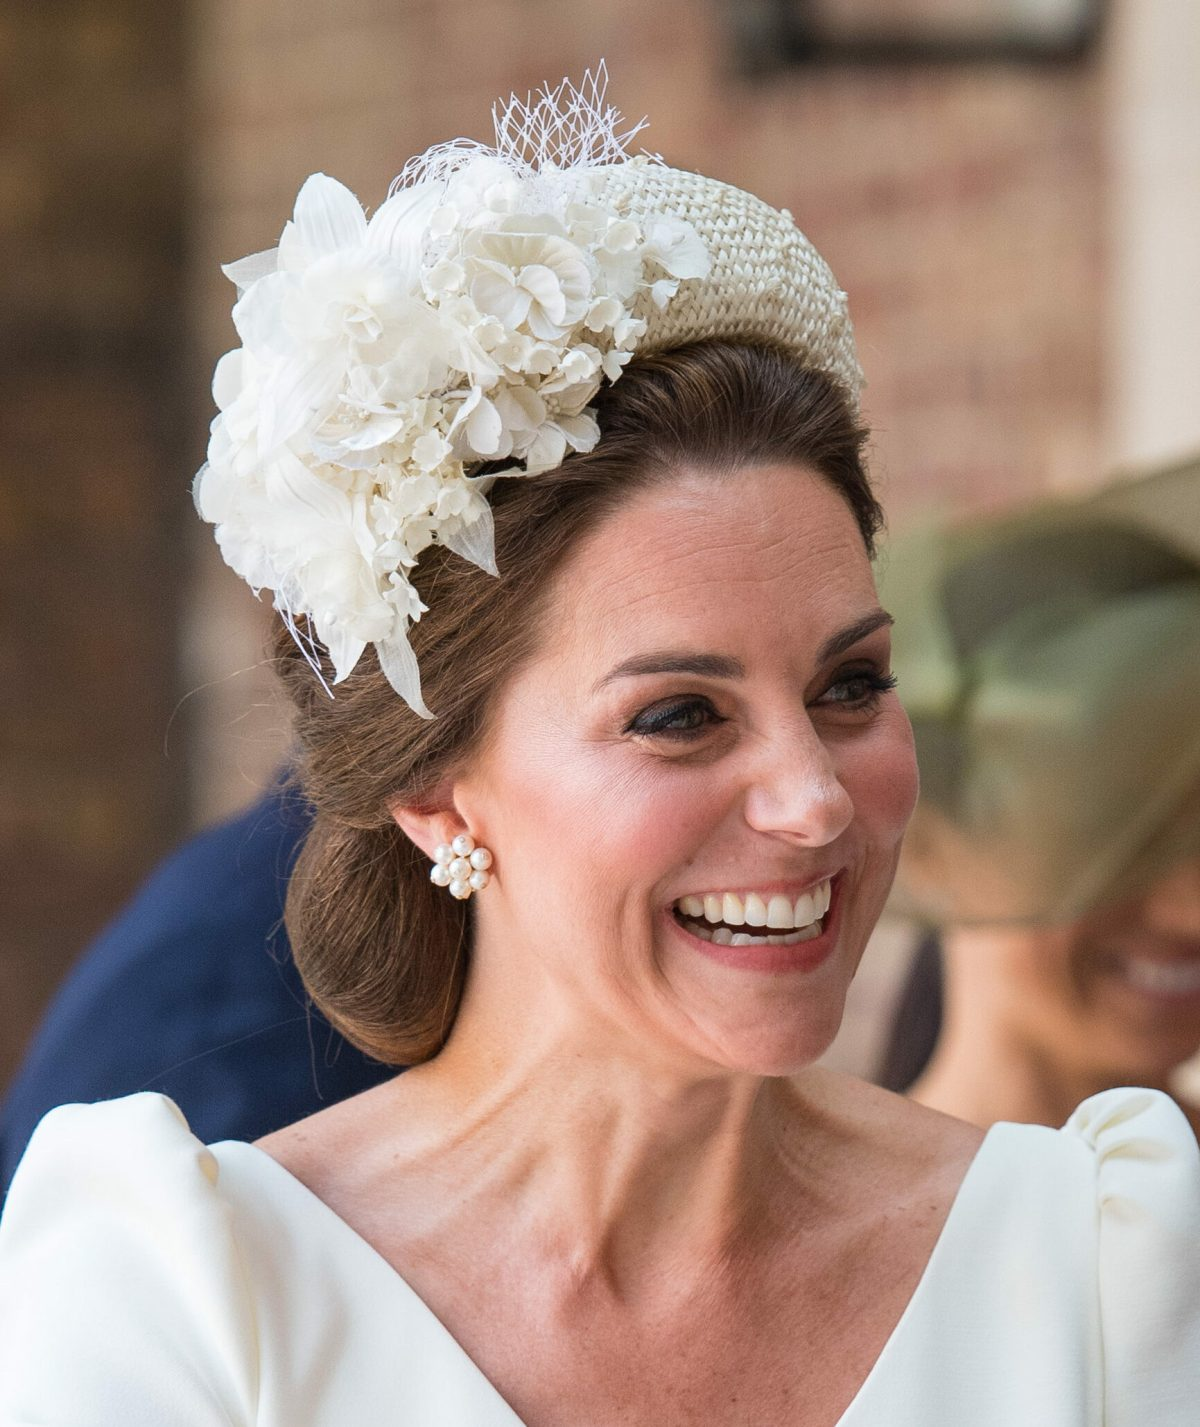 The Duchess of Cambridge wears a headpiece for the christening of Prince Louis at St James's Palace. Picture by  i-Images / Pool